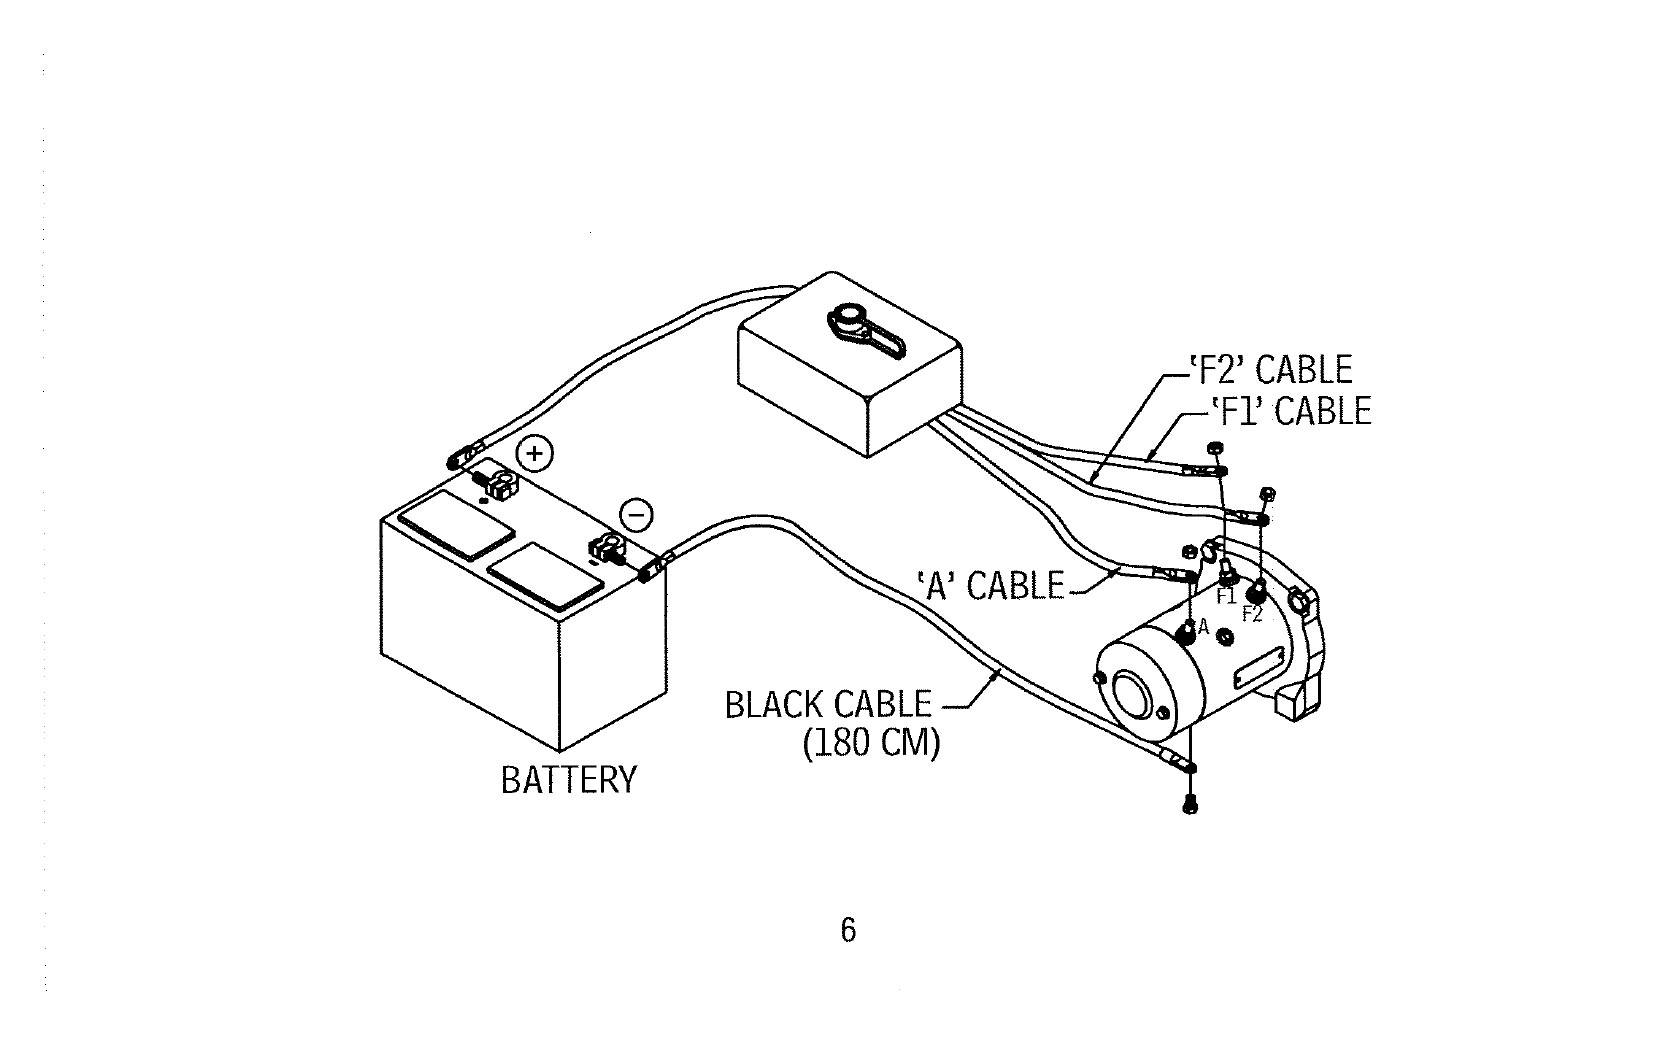 Moving Warn Solenoid To Engine Bay Fjc